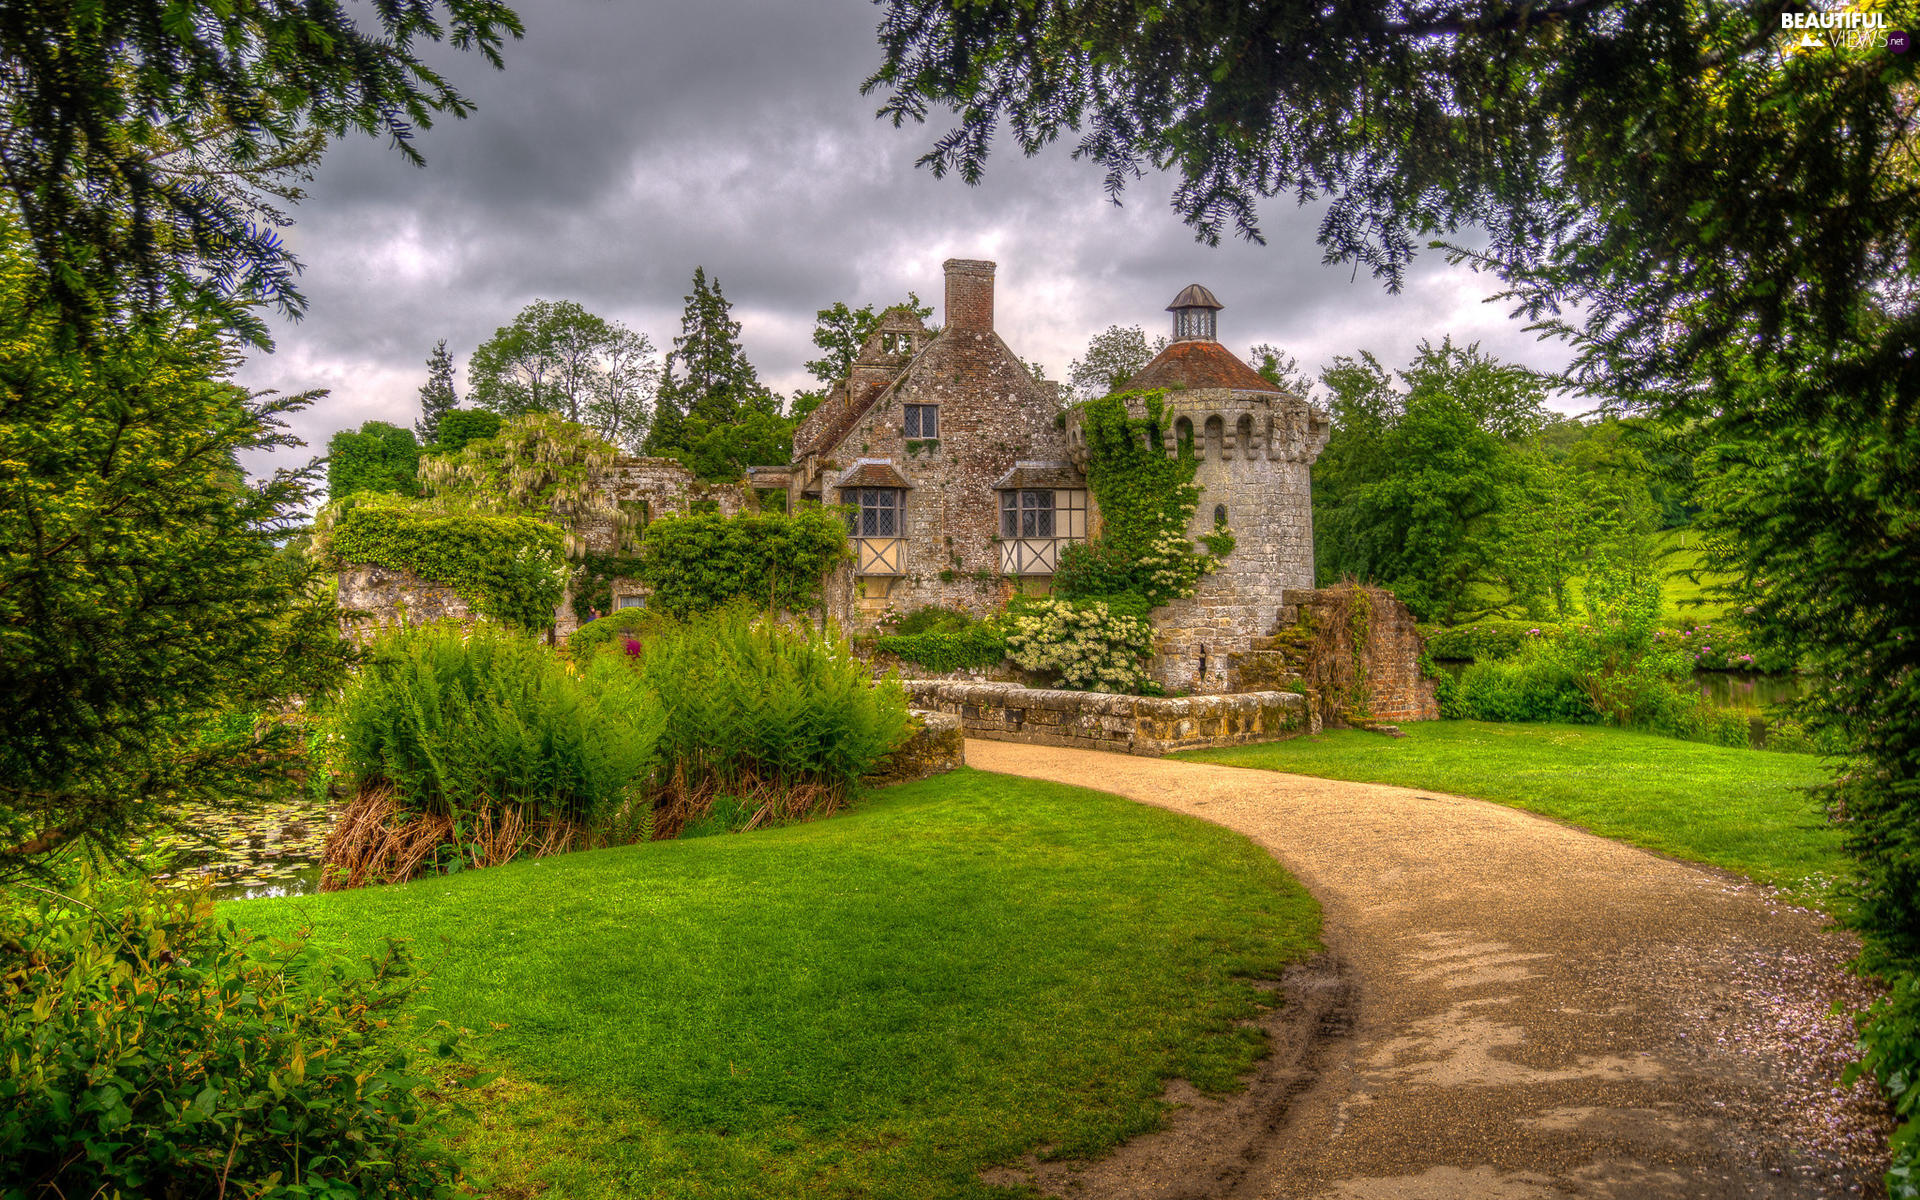 Scotney Castle, Path, Kent County, Lawn, England, green, Garden, Pond - car, trees, Park, manor-house, clouds, viewes